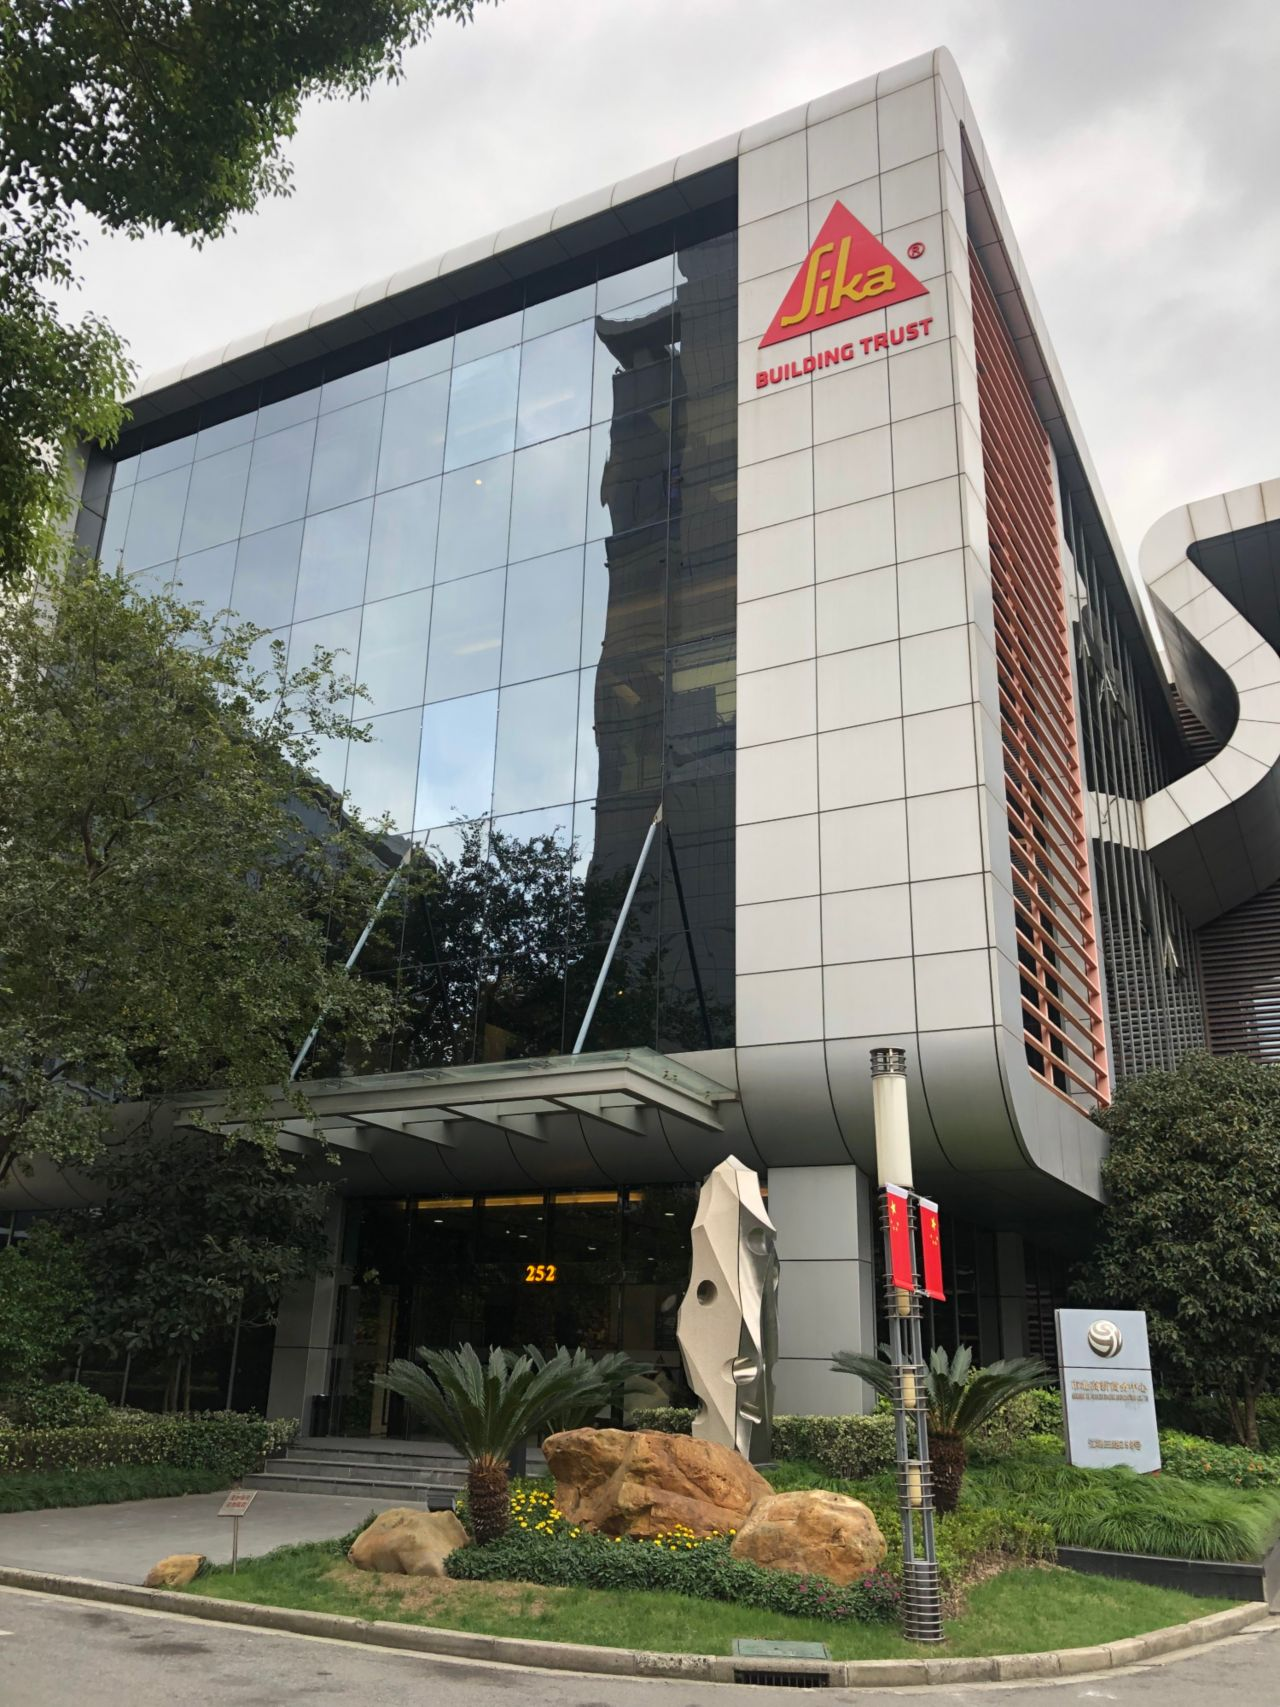 Outside view of Sika building